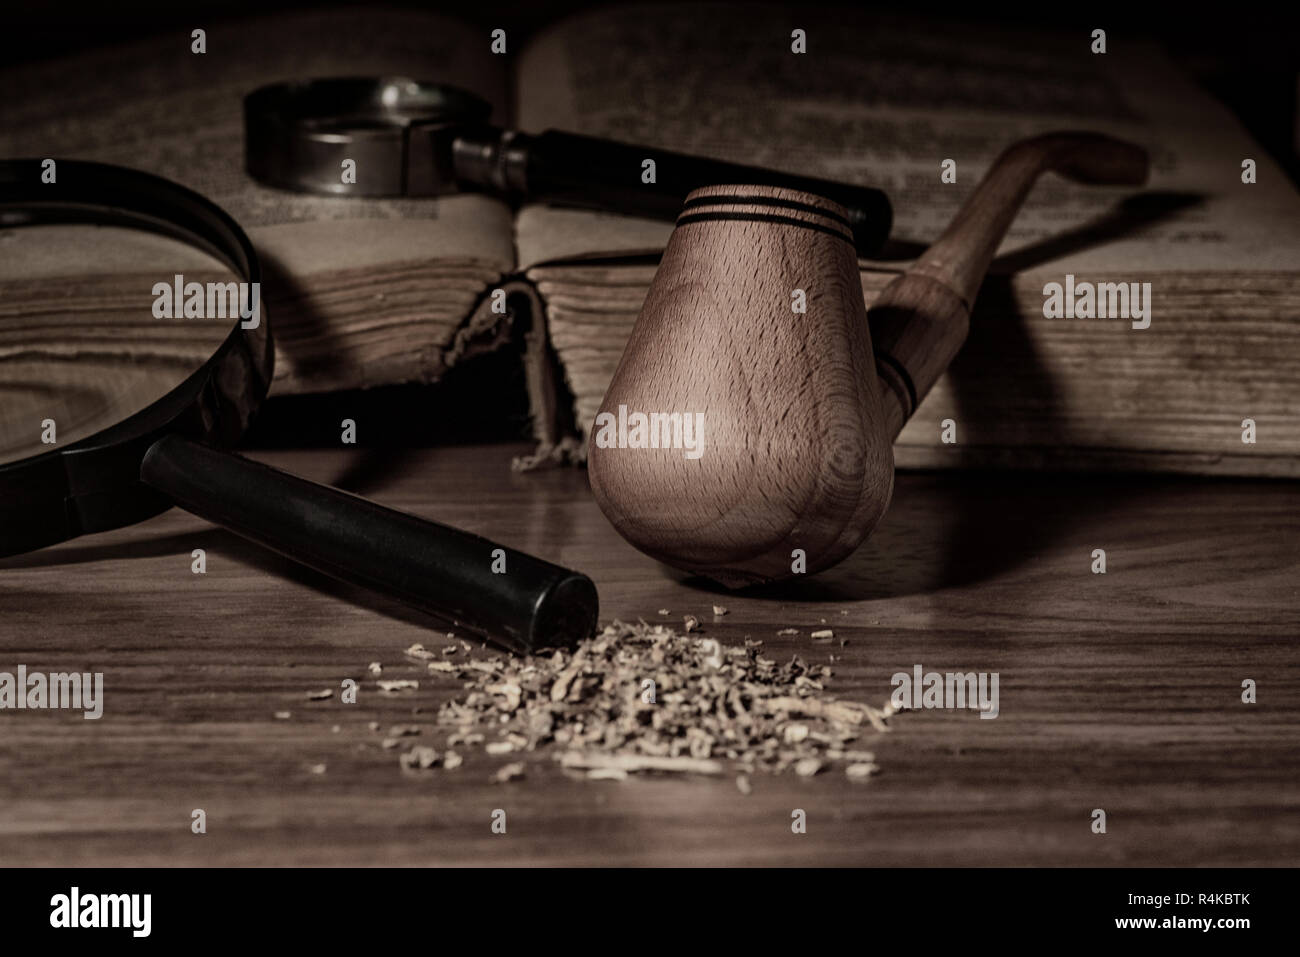 Smoking pipe with tobacco leaves on wooden background. - Stock Image